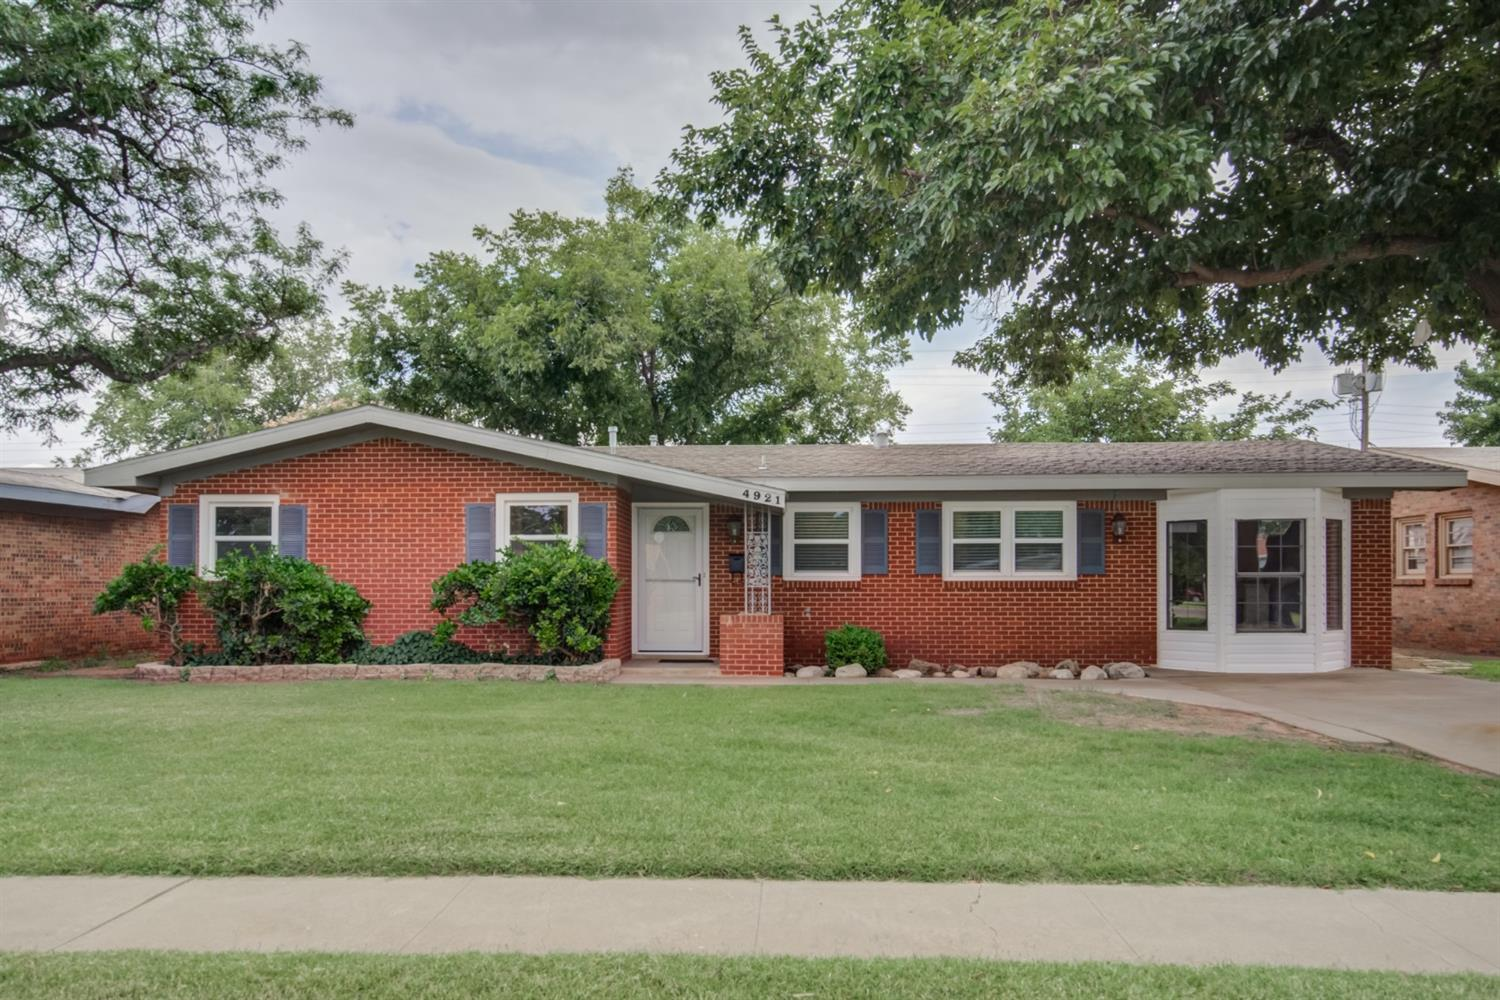 4921 49th Street, Lubbock in Lubbock County, TX 79414 Home for Sale